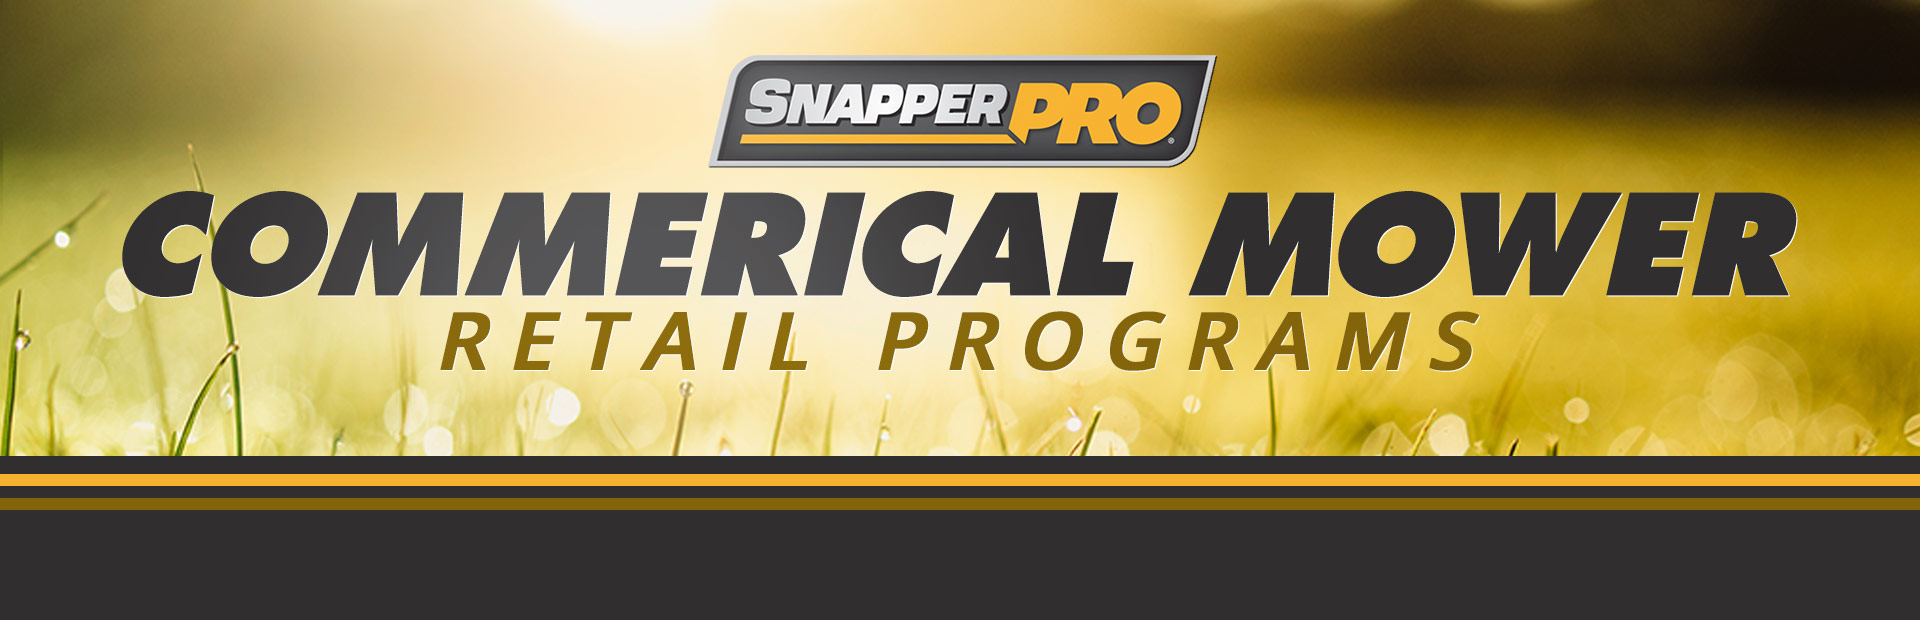 Snapper Pro: Commerical Mower Retail Programs